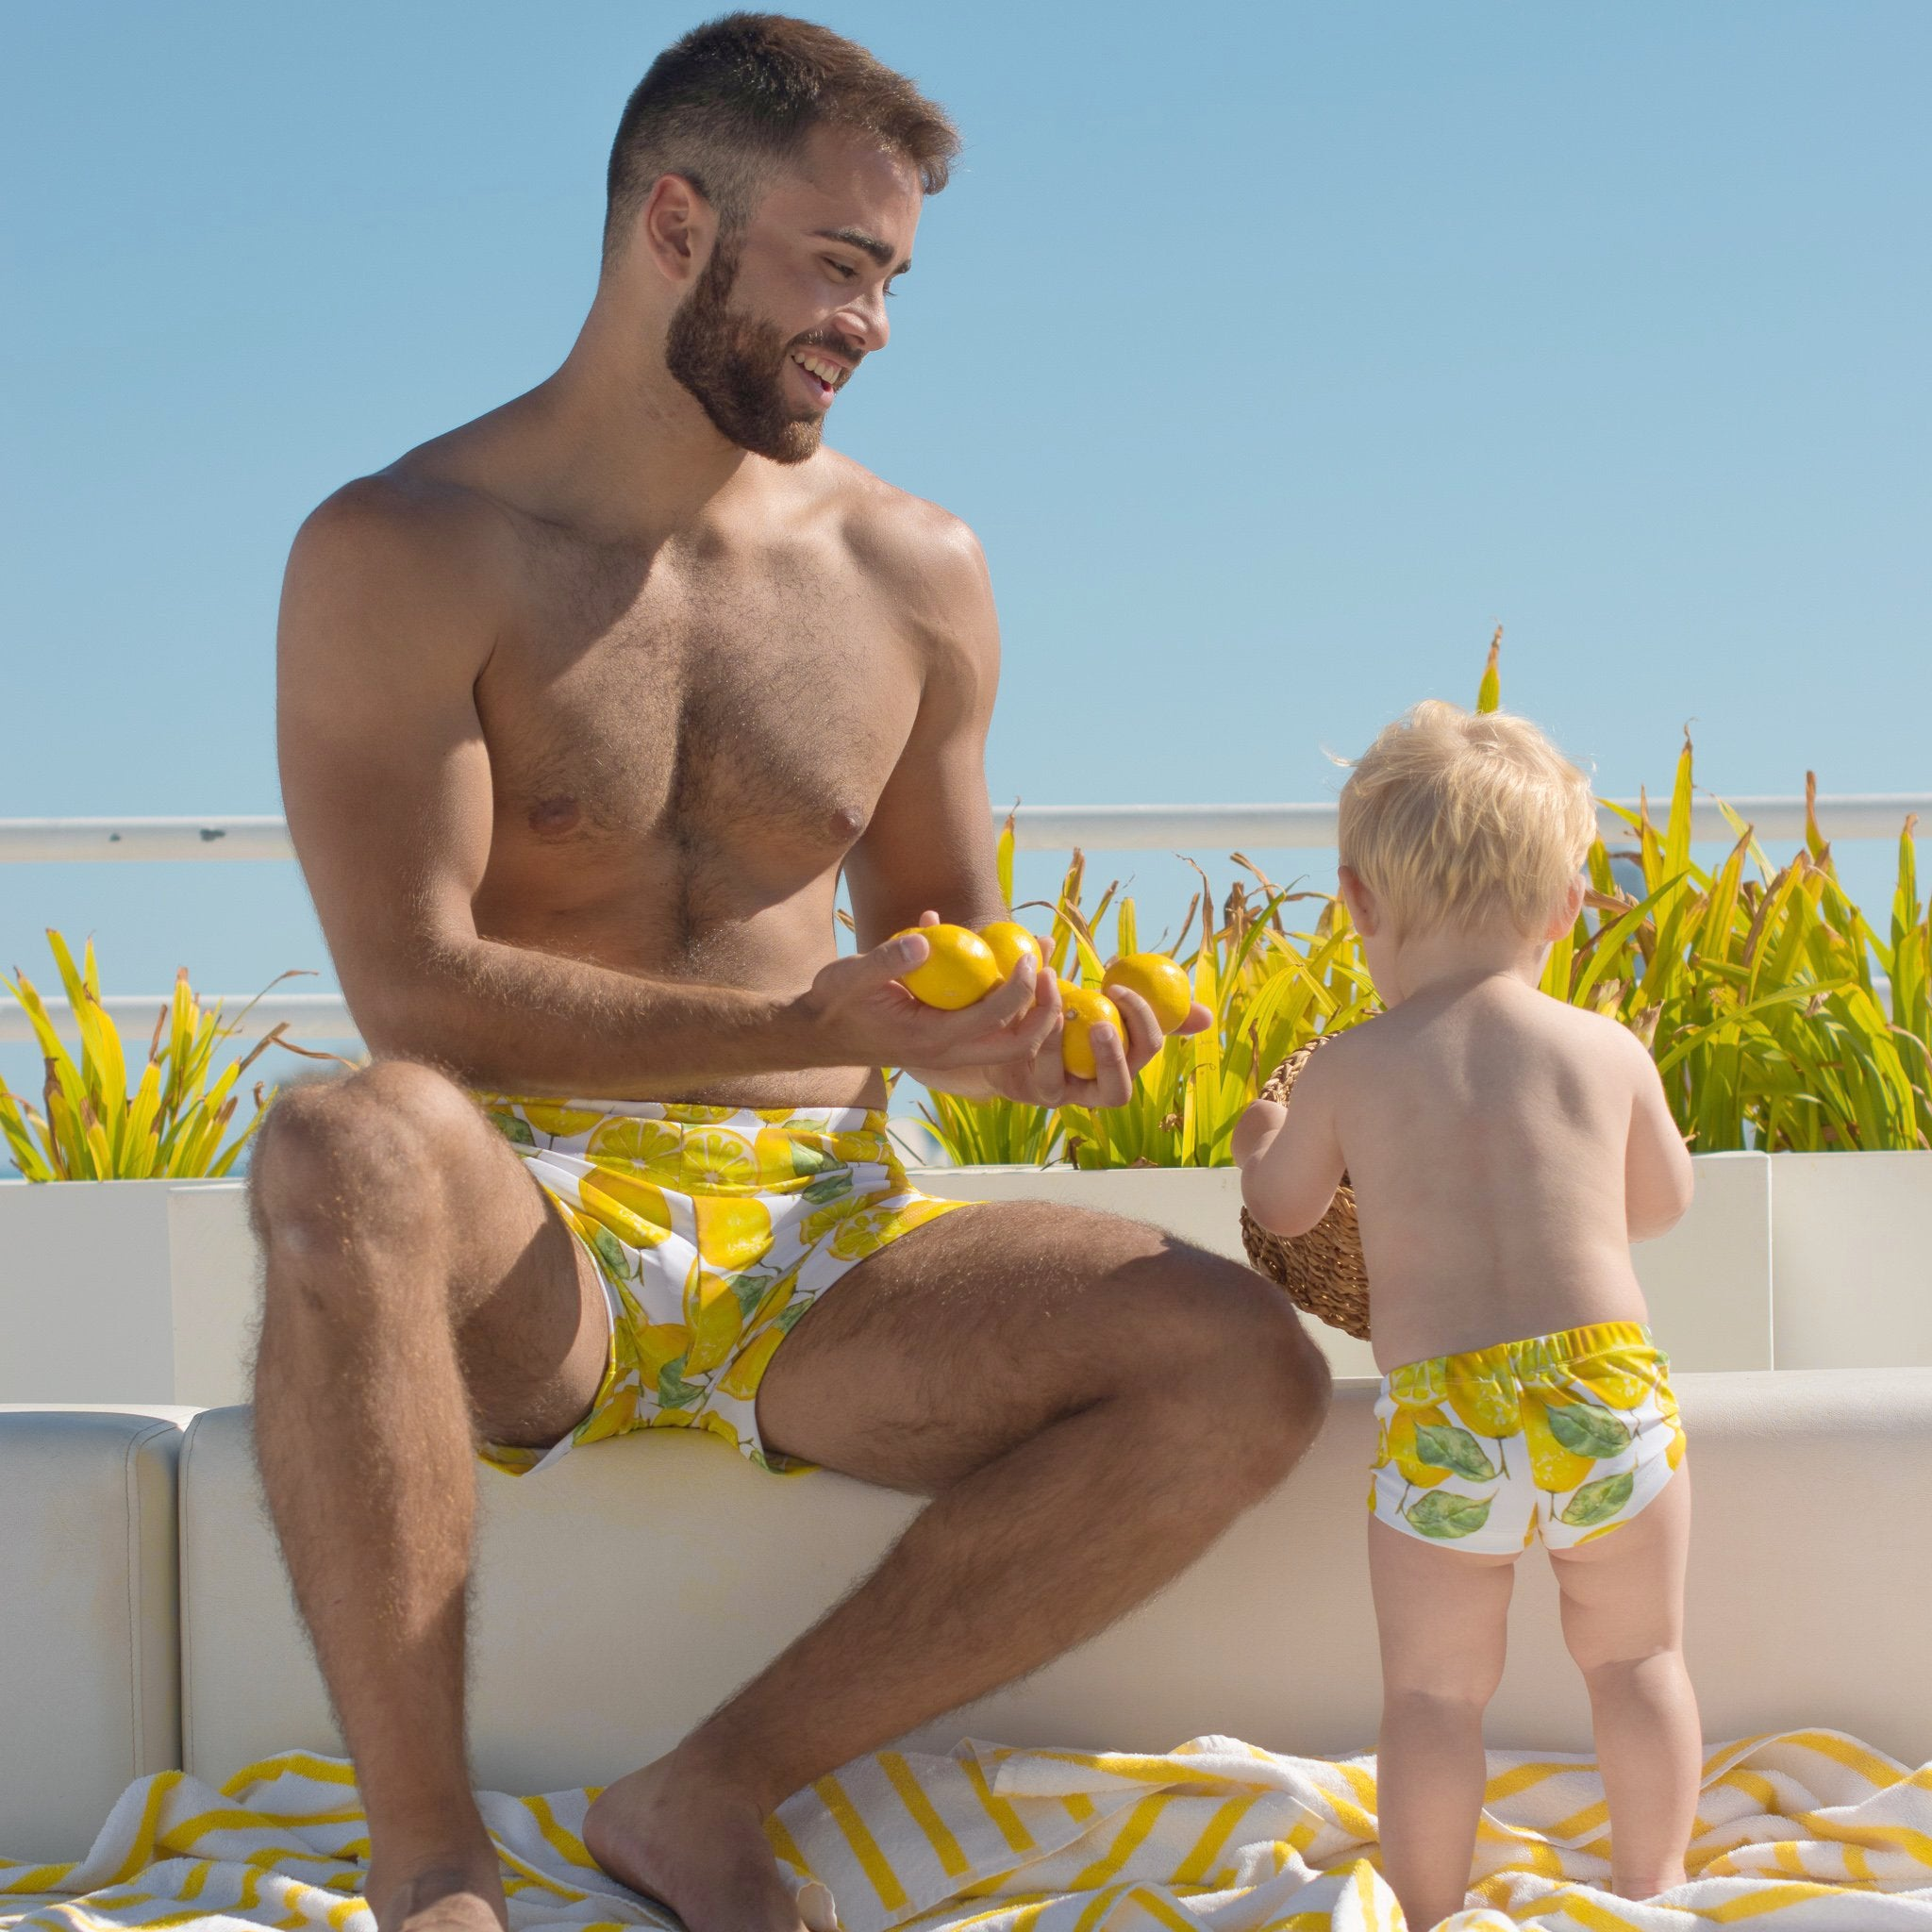 b3ffcf3b25 Lemon - Daddy and me Swimsuits - dad and son matching swimsuits